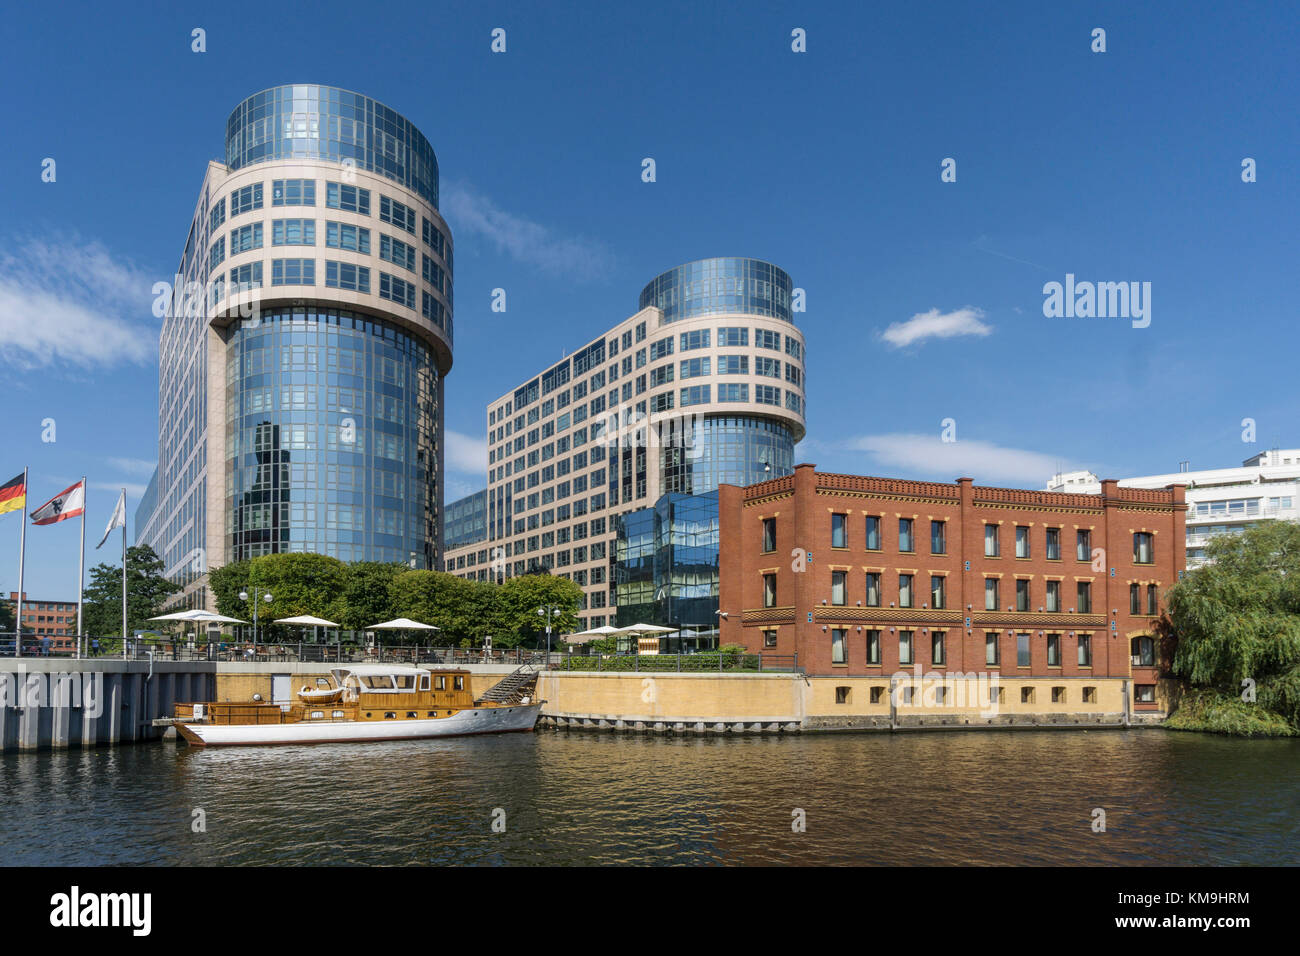 Spreebogen, River Spree / Alt Moabit with Federal Ministry of the Interior, - Stock Image